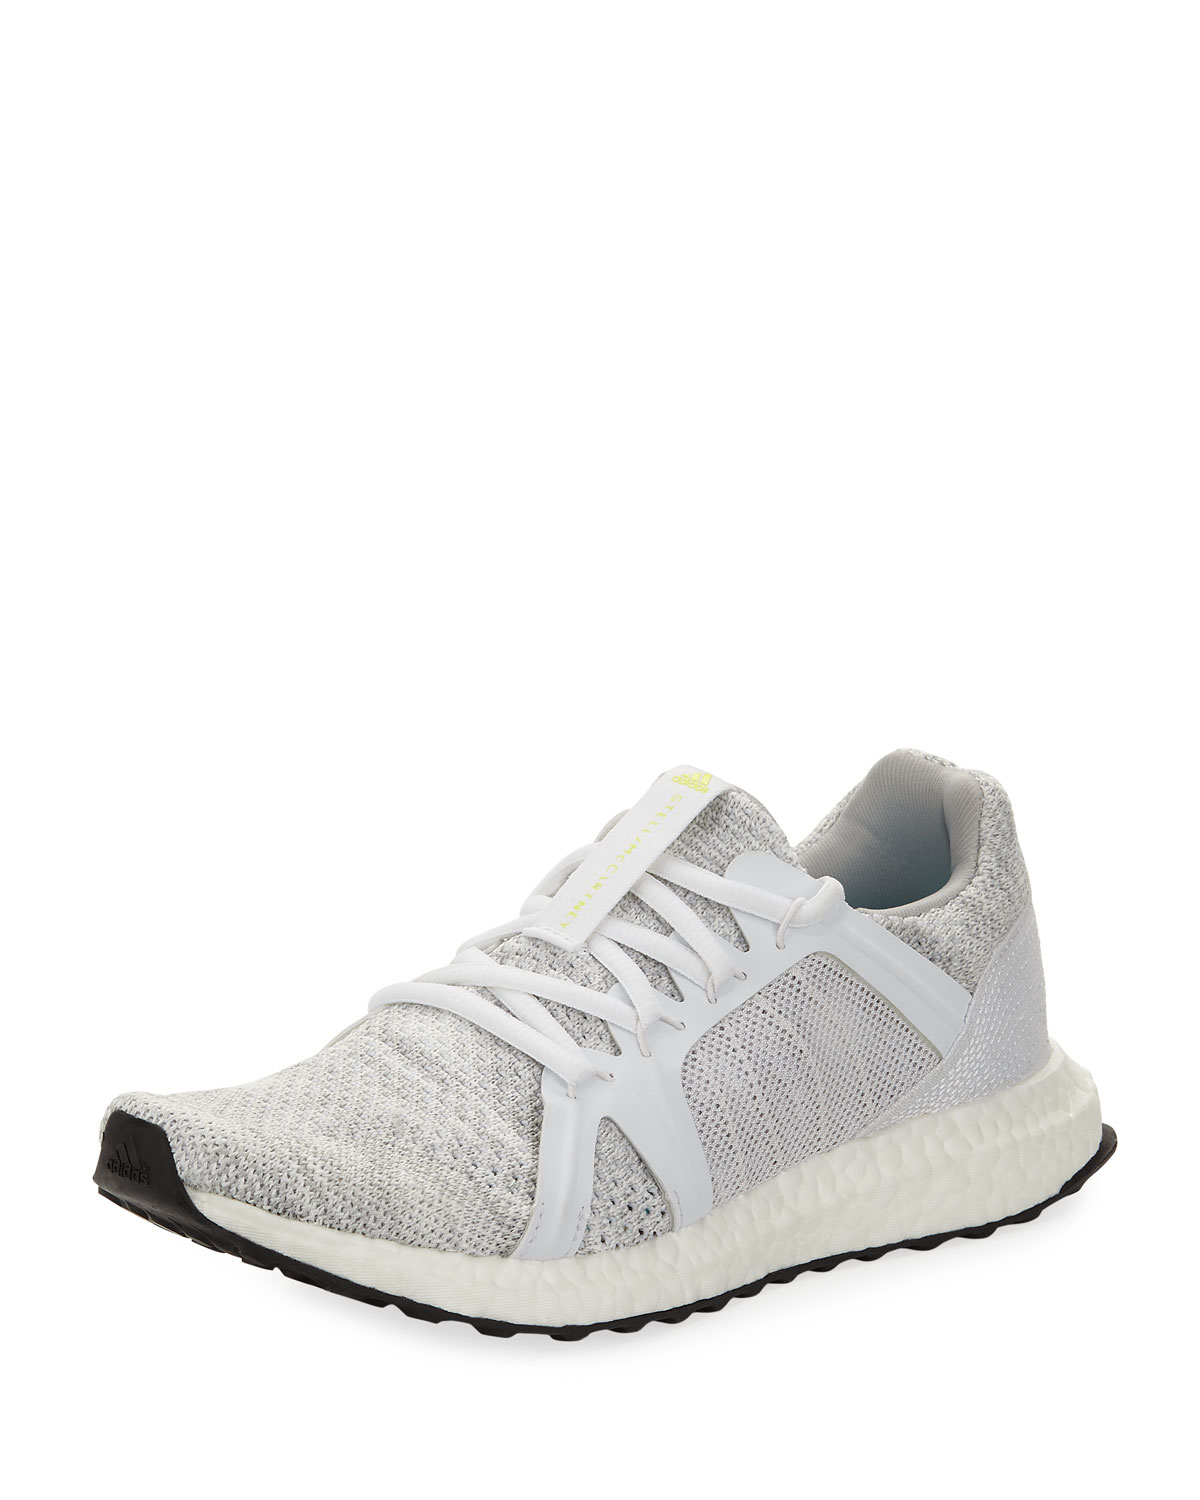 b527c67669fc5 adidas by Stella McCartney Ultraboost Parley Sneakers